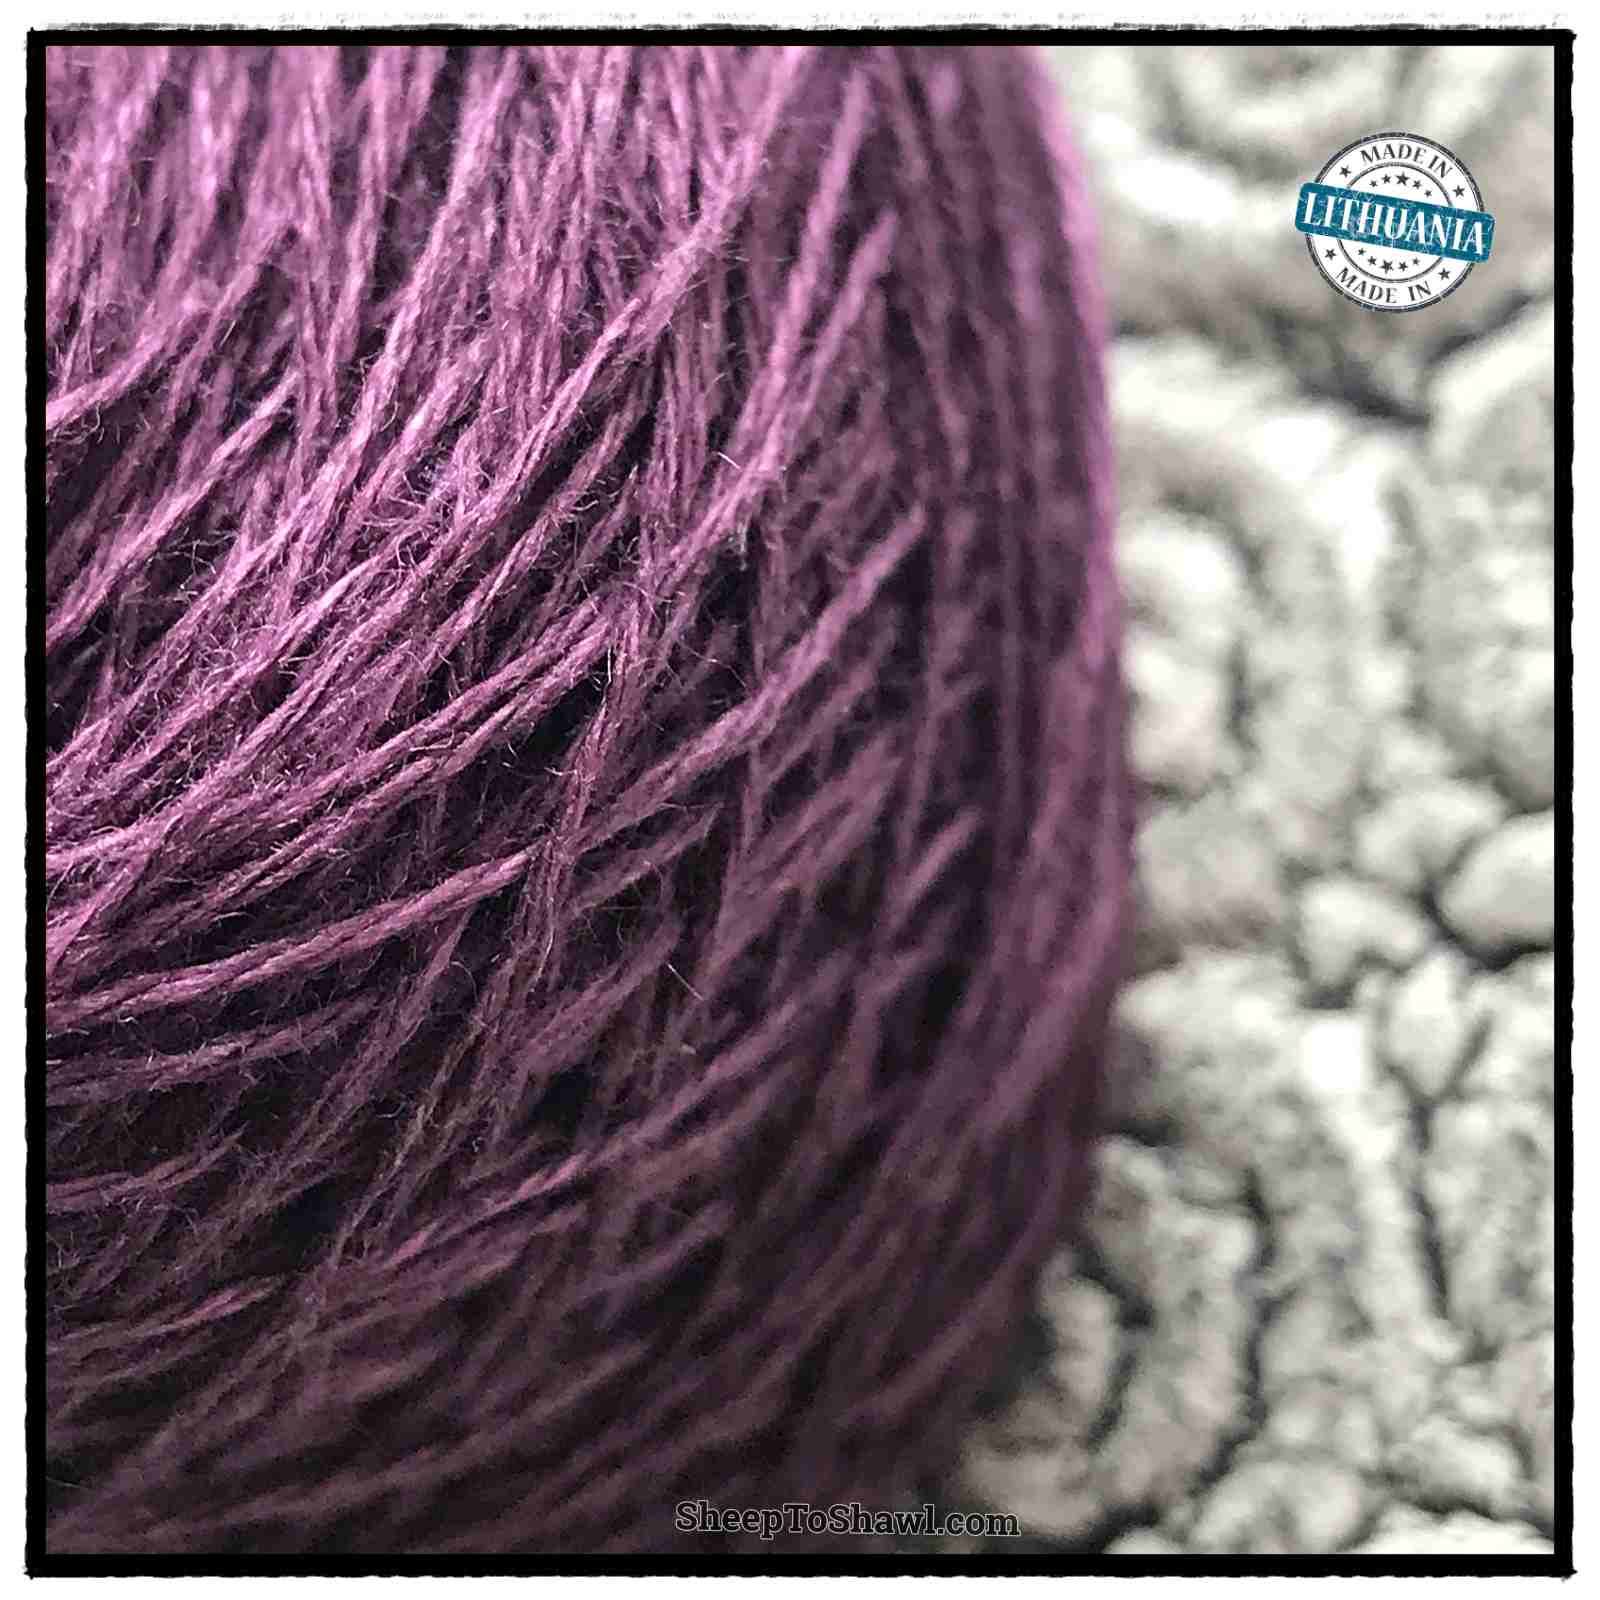 Linen Yarn From Lithuania - 3 ply Plum 2